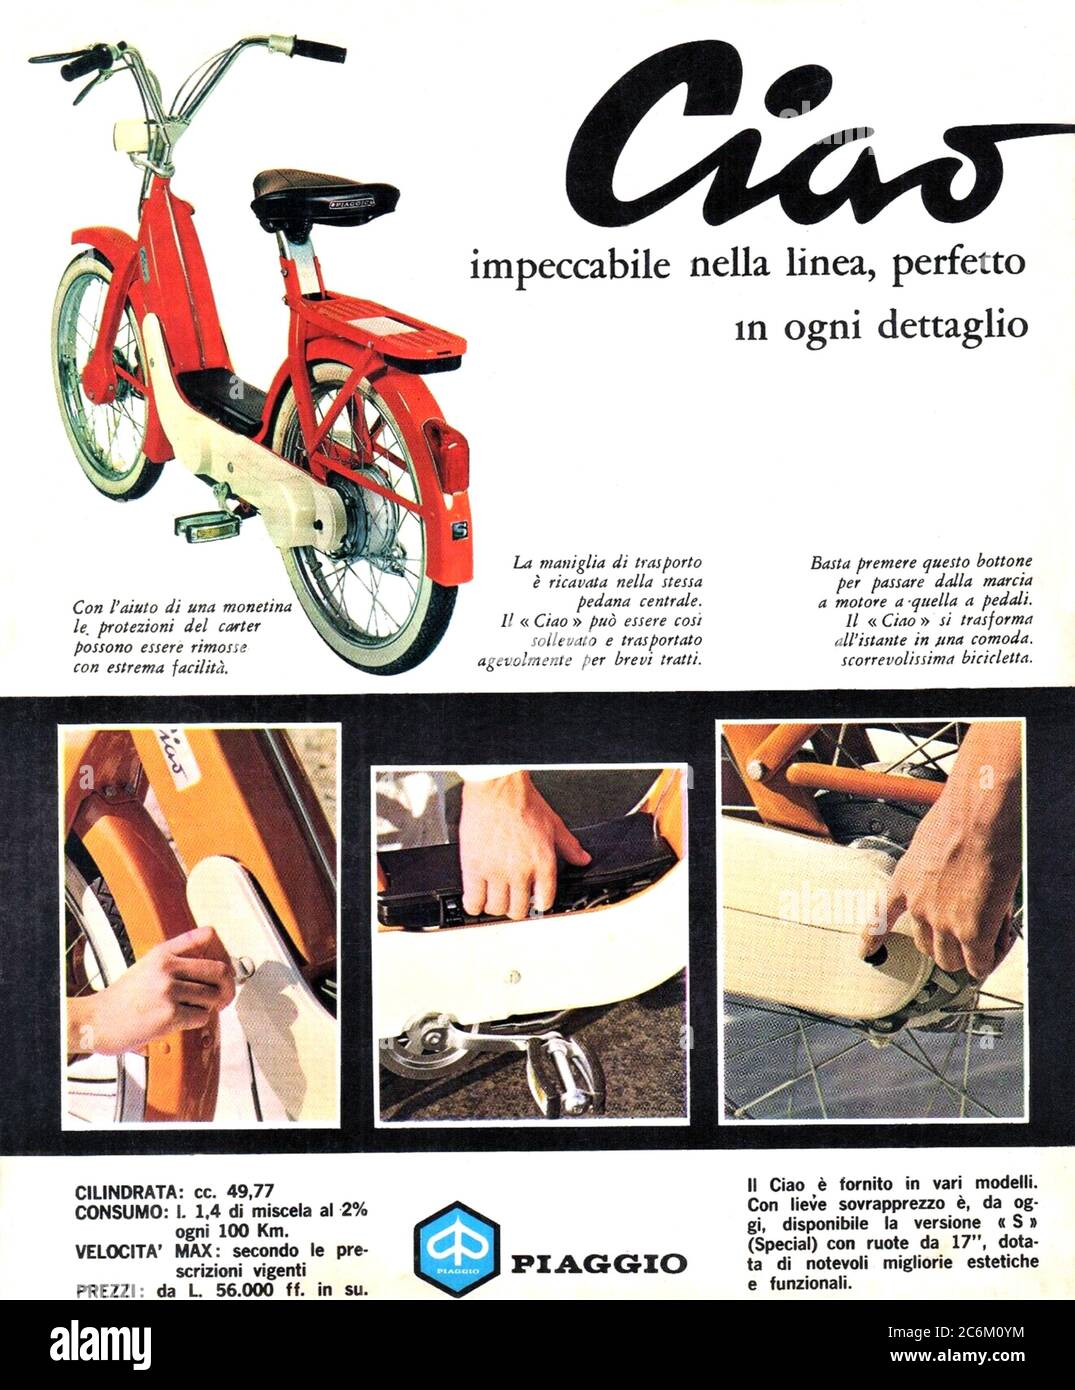 1969 , ITALY : The celebrated italian scooter CIAO 50  by PIAGGIO industry , advertising . - SCOOTERS - motorino - moto -  INDUSTRIA - INDUSTRIALE - HISTORY -  foto storica - INDUSTRIALE - INDUSTRY - INDUSTRIA - ADVERTISING - pubblicità - moto - motociclismo - motorcycle - motoscooter - ANNI SESSANTA - '60 - 60's --- Archivio GBB Stock Photo